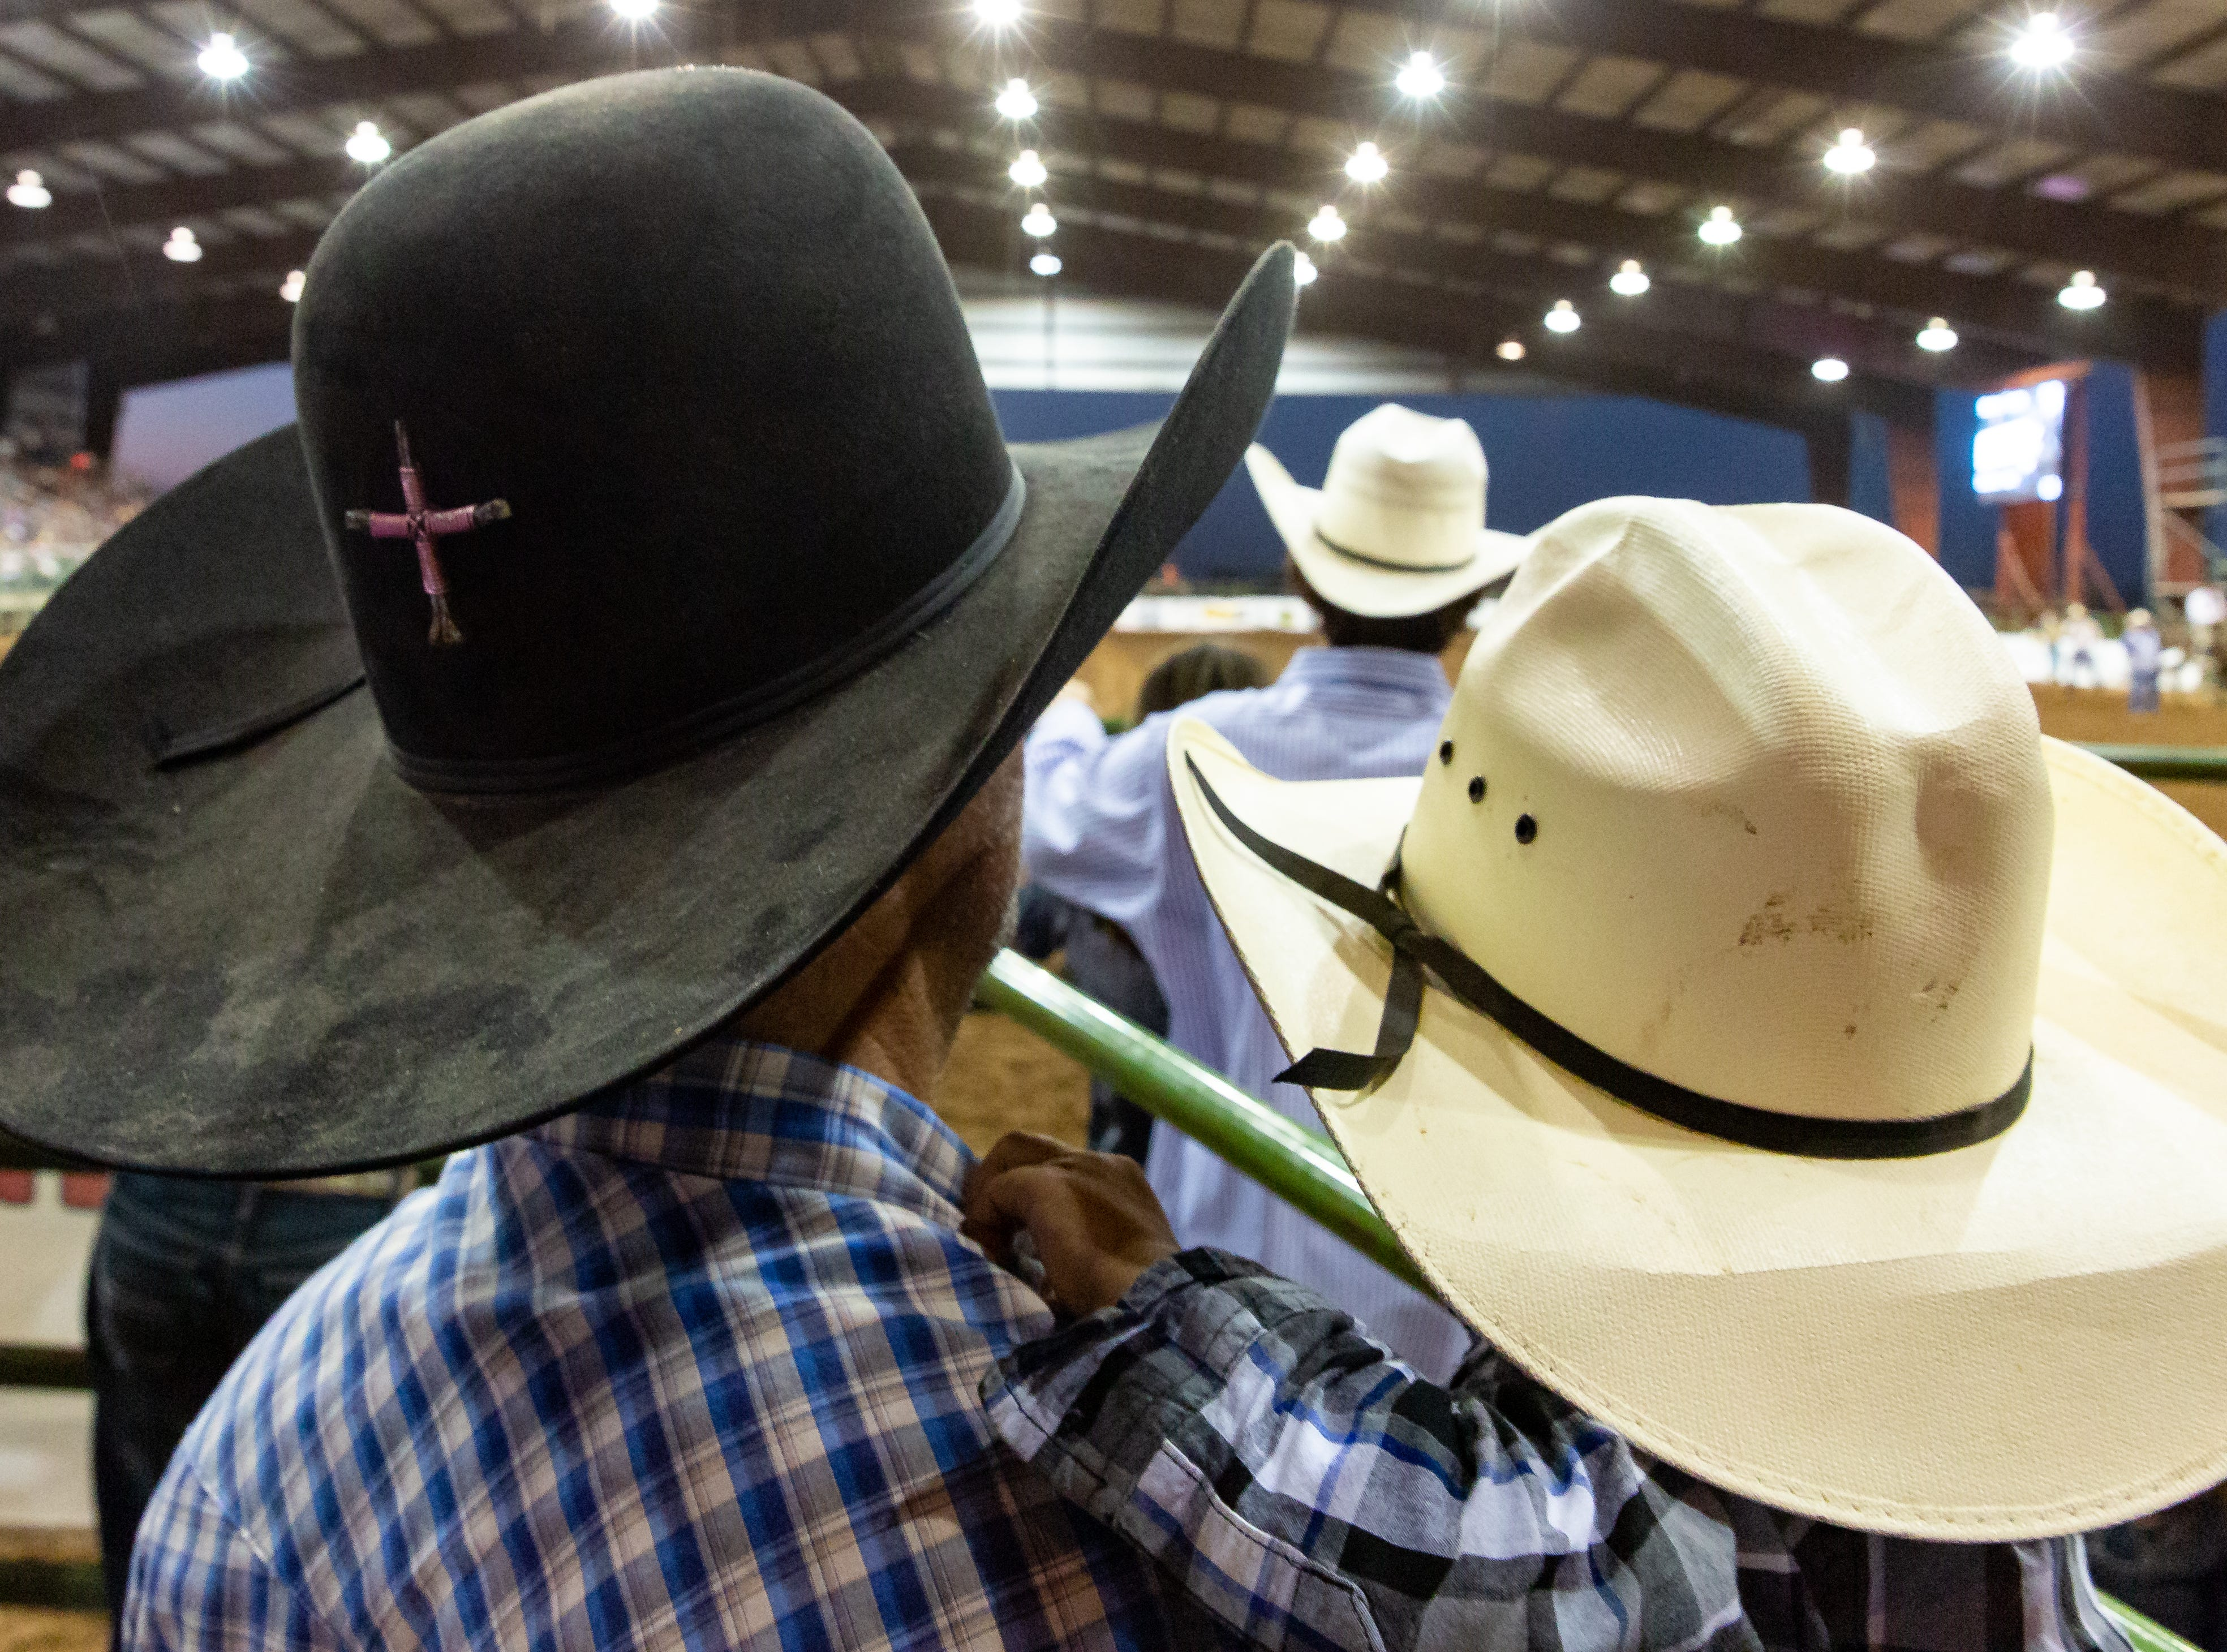 BJ Kane and his son Enoch Kane, 1-year-old, both of Las Cruces, watch the events in the Pete V. Domenici Arena on Saturday, Sept. 29, 2018, during the Southern New Mexico State Fair & Rodeo at the Southern New Mexico State Fairgrounds.